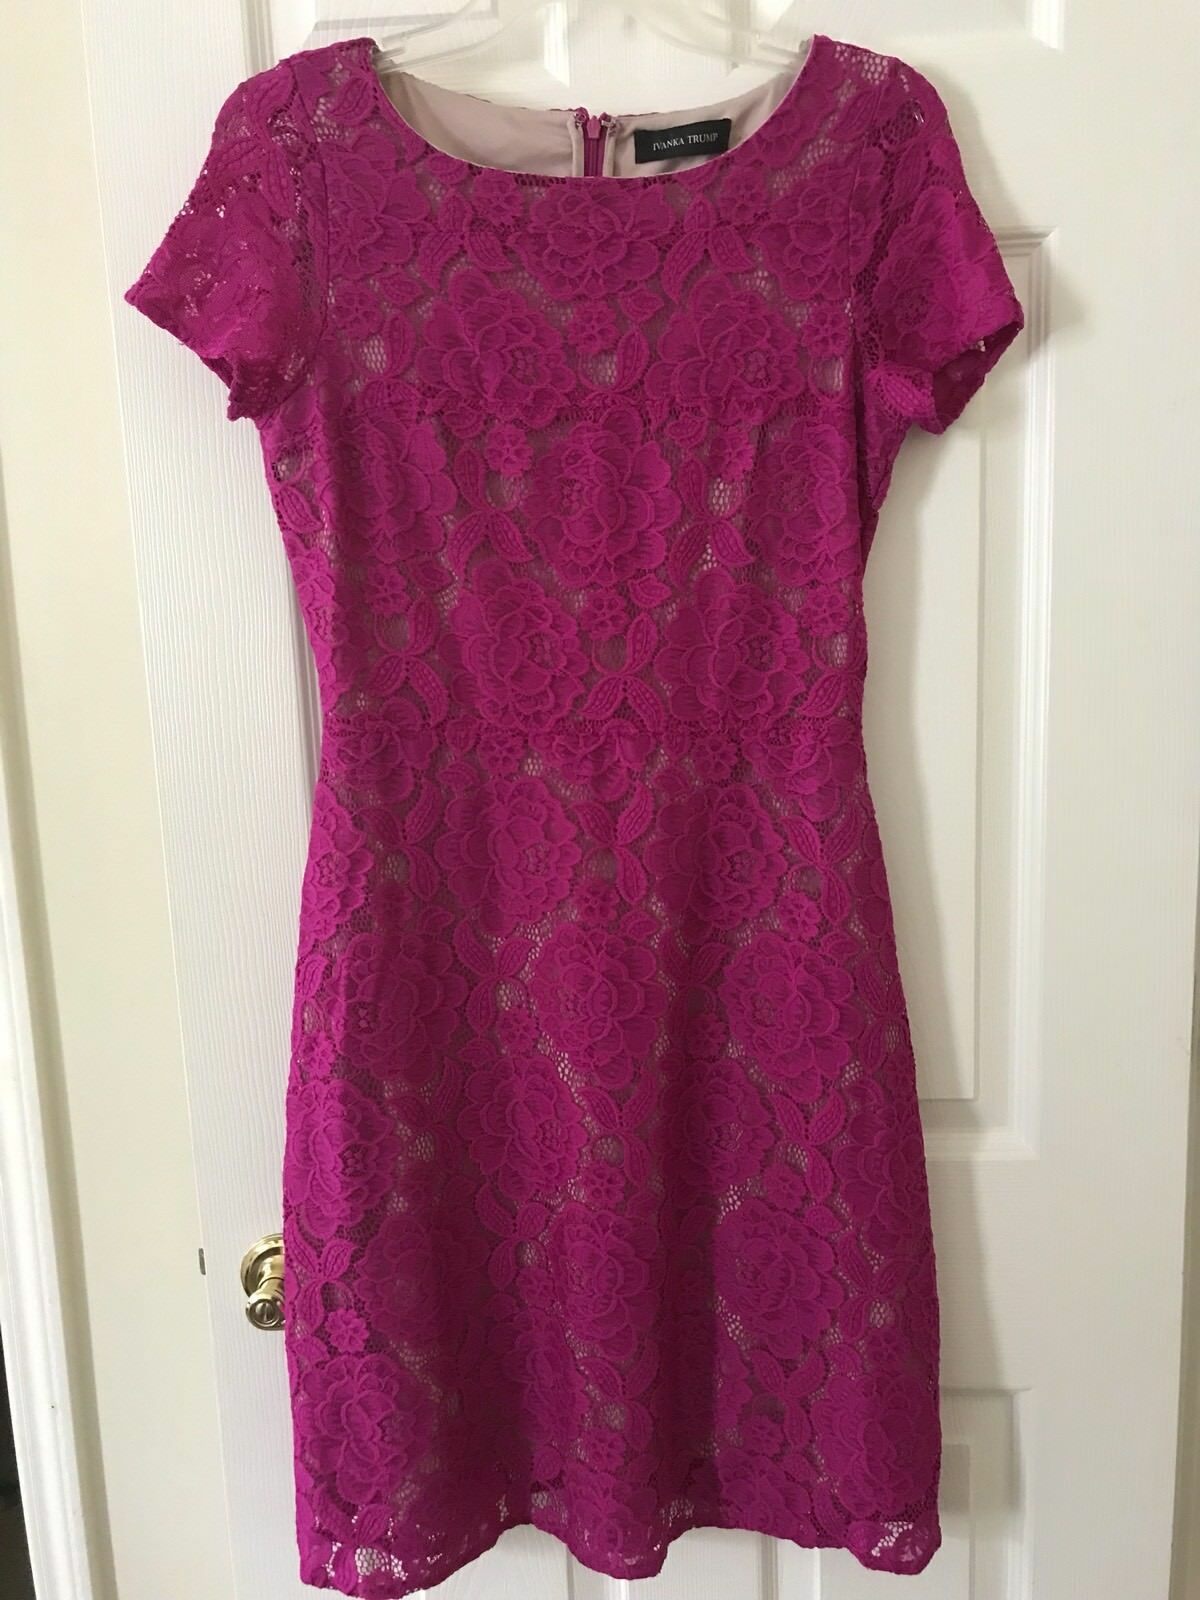 Ivanka Trump damen's Größe 4 Fuchsia Rosa Floral Overlay Lined Lace Dress Stretch